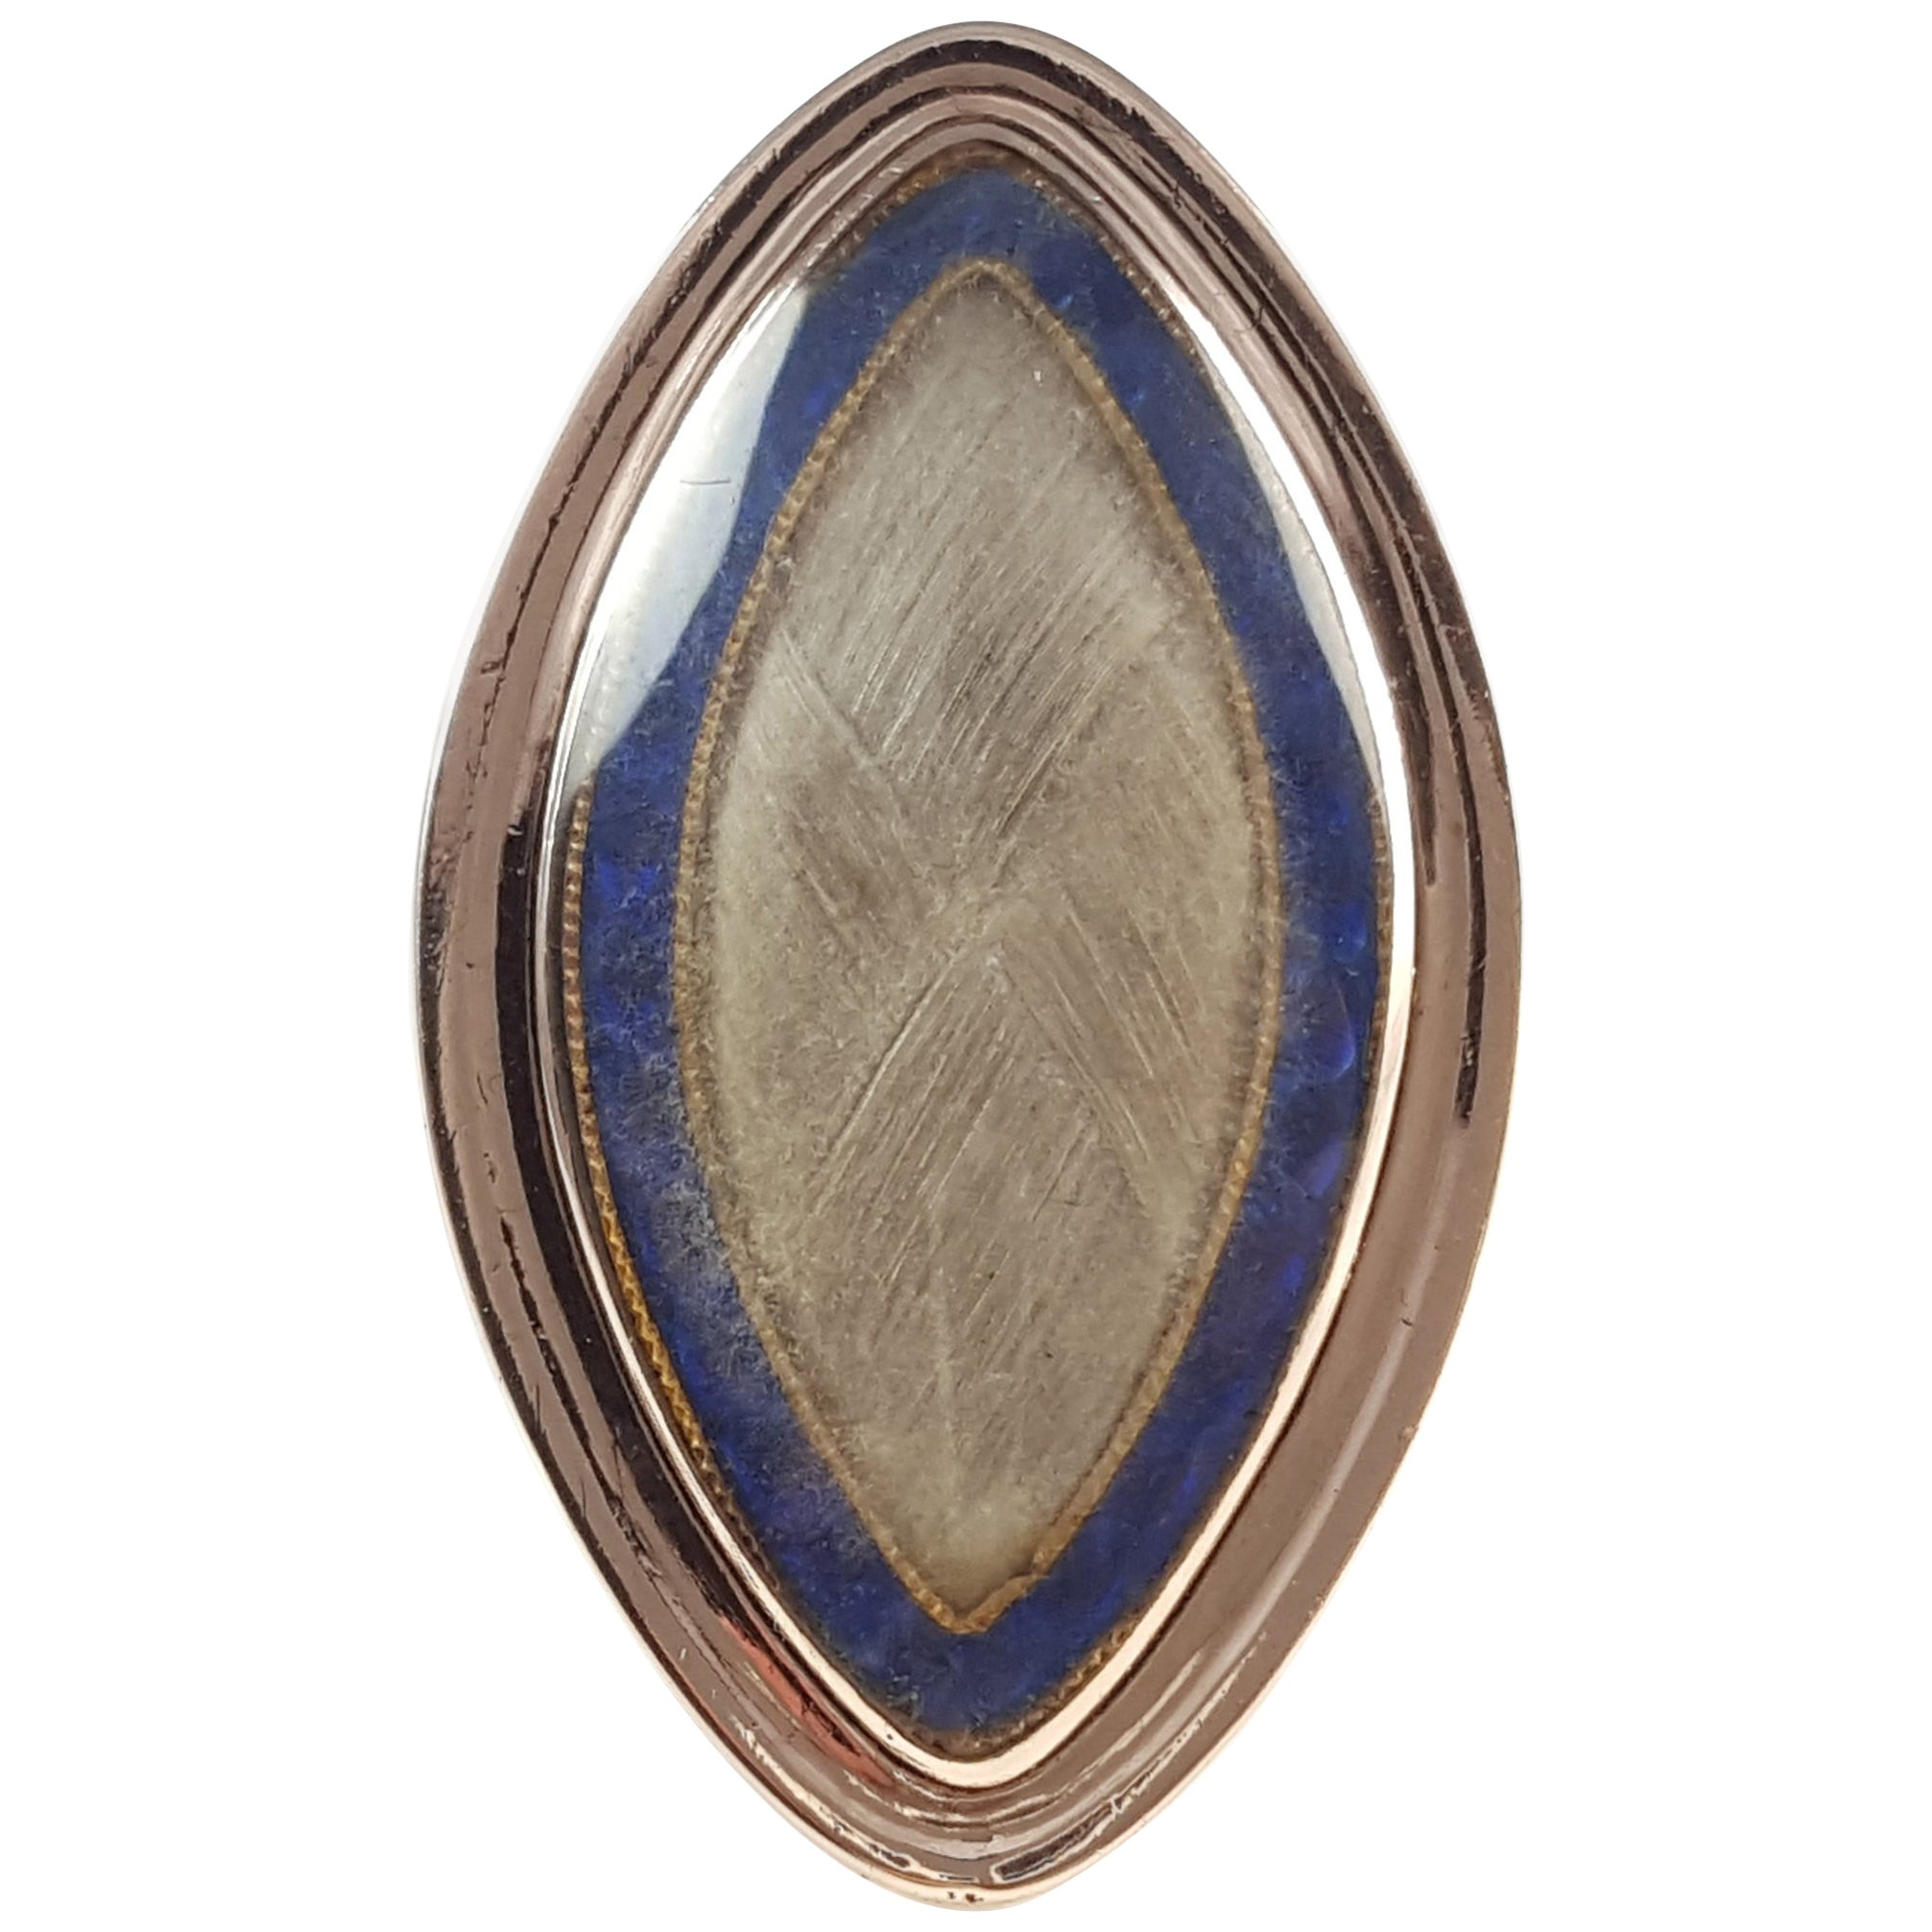 Georgian 9k rose gold glazed hair panel & blue enamel memorial navette ring